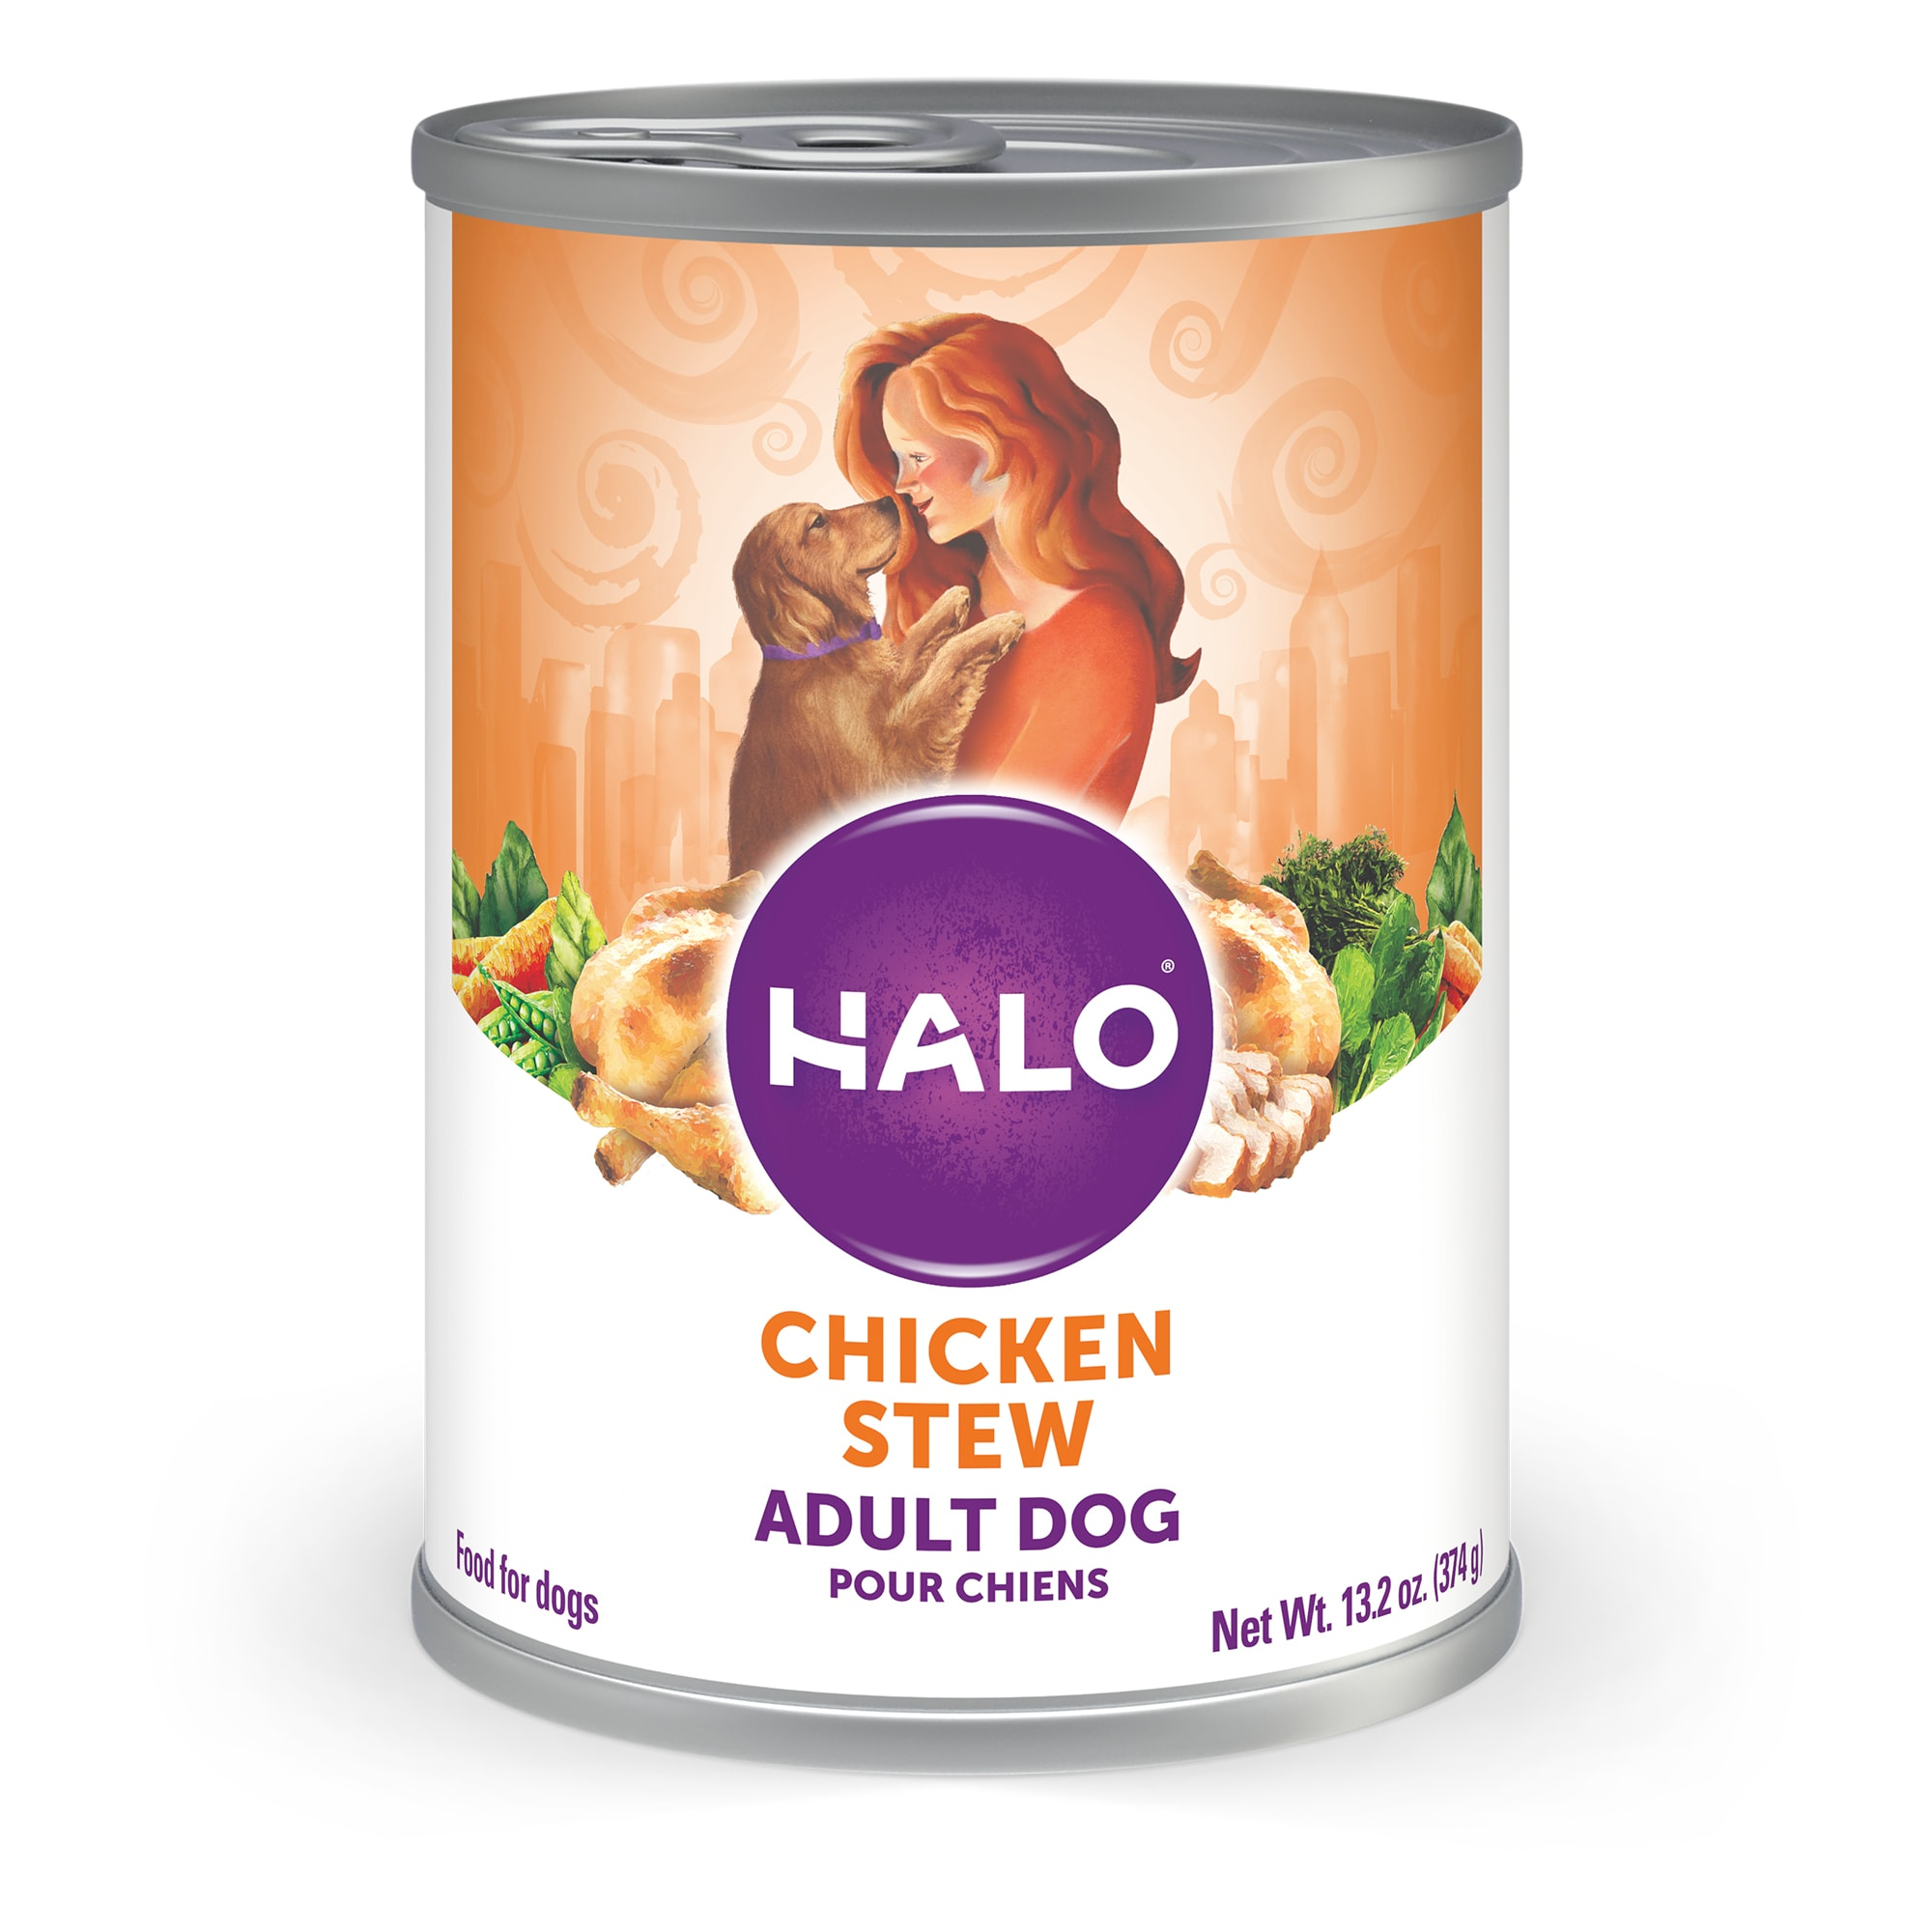 Halo Adult Holisitic Chicken Recipe Wet Dog Food, 13.2 oz., Case of 12, 12 X 13.2 OZ